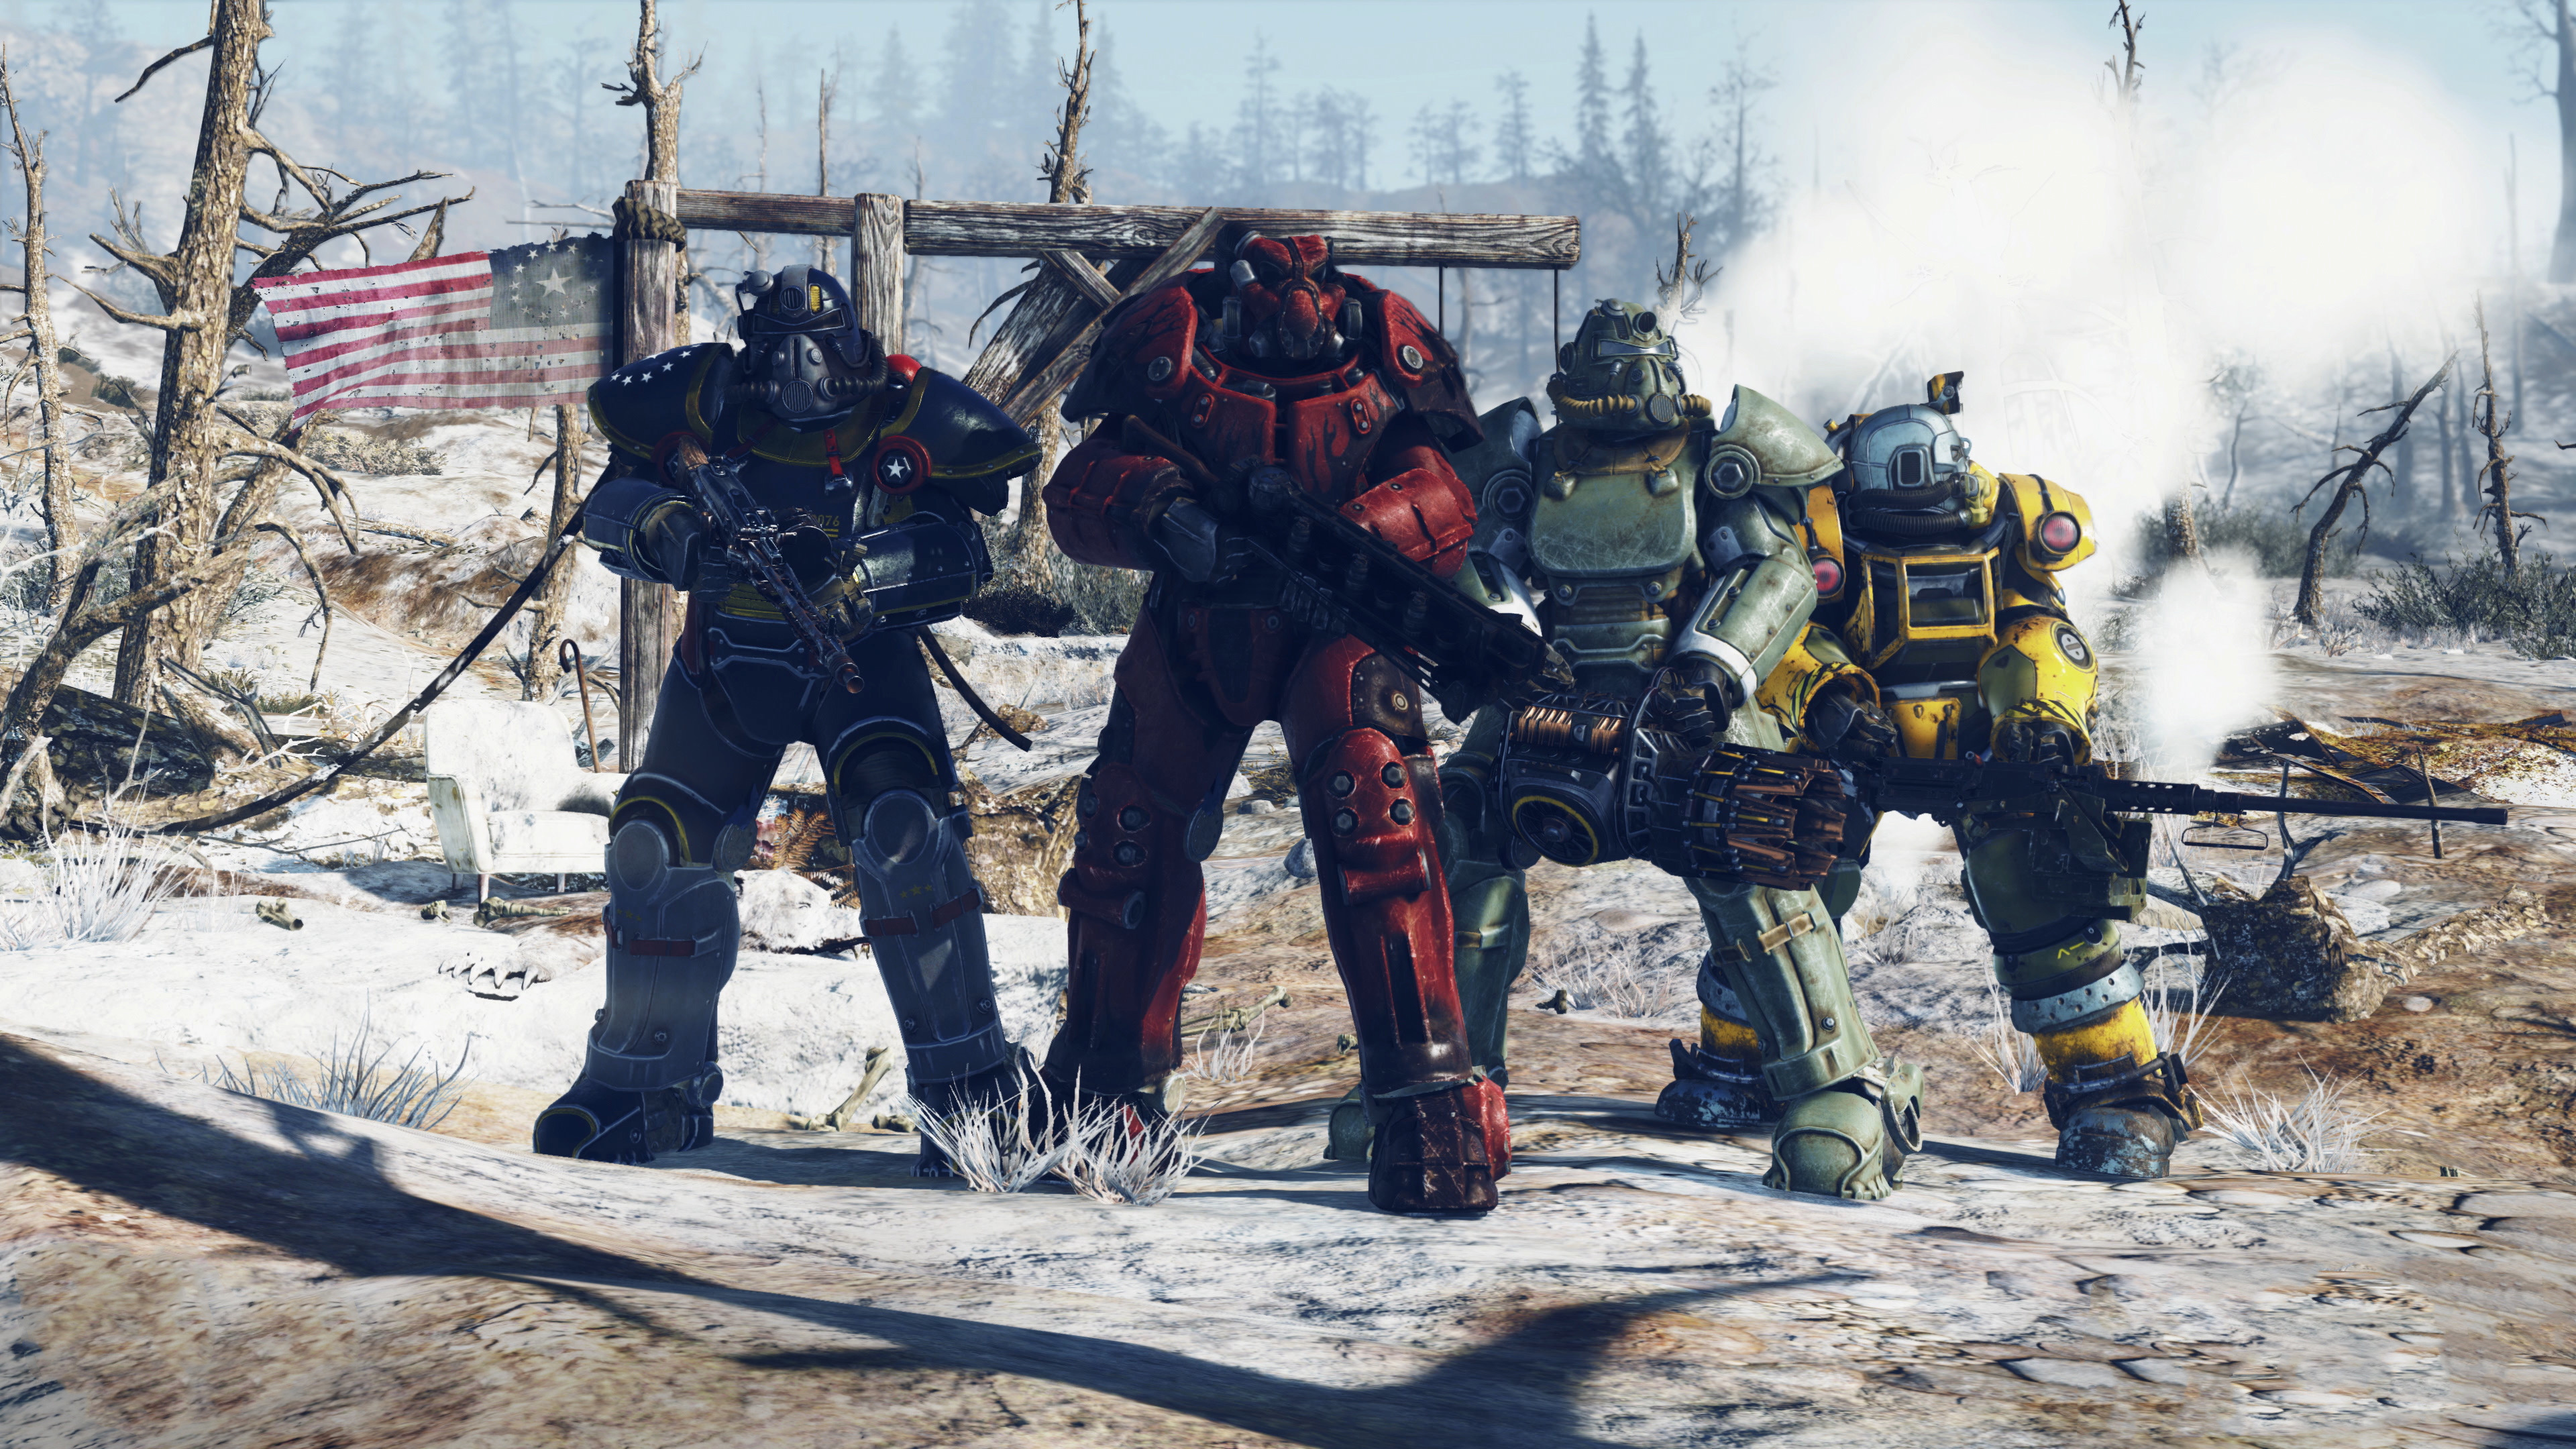 Download 3840x2160 Wallpaper Fallout 76 Armour Suits E3